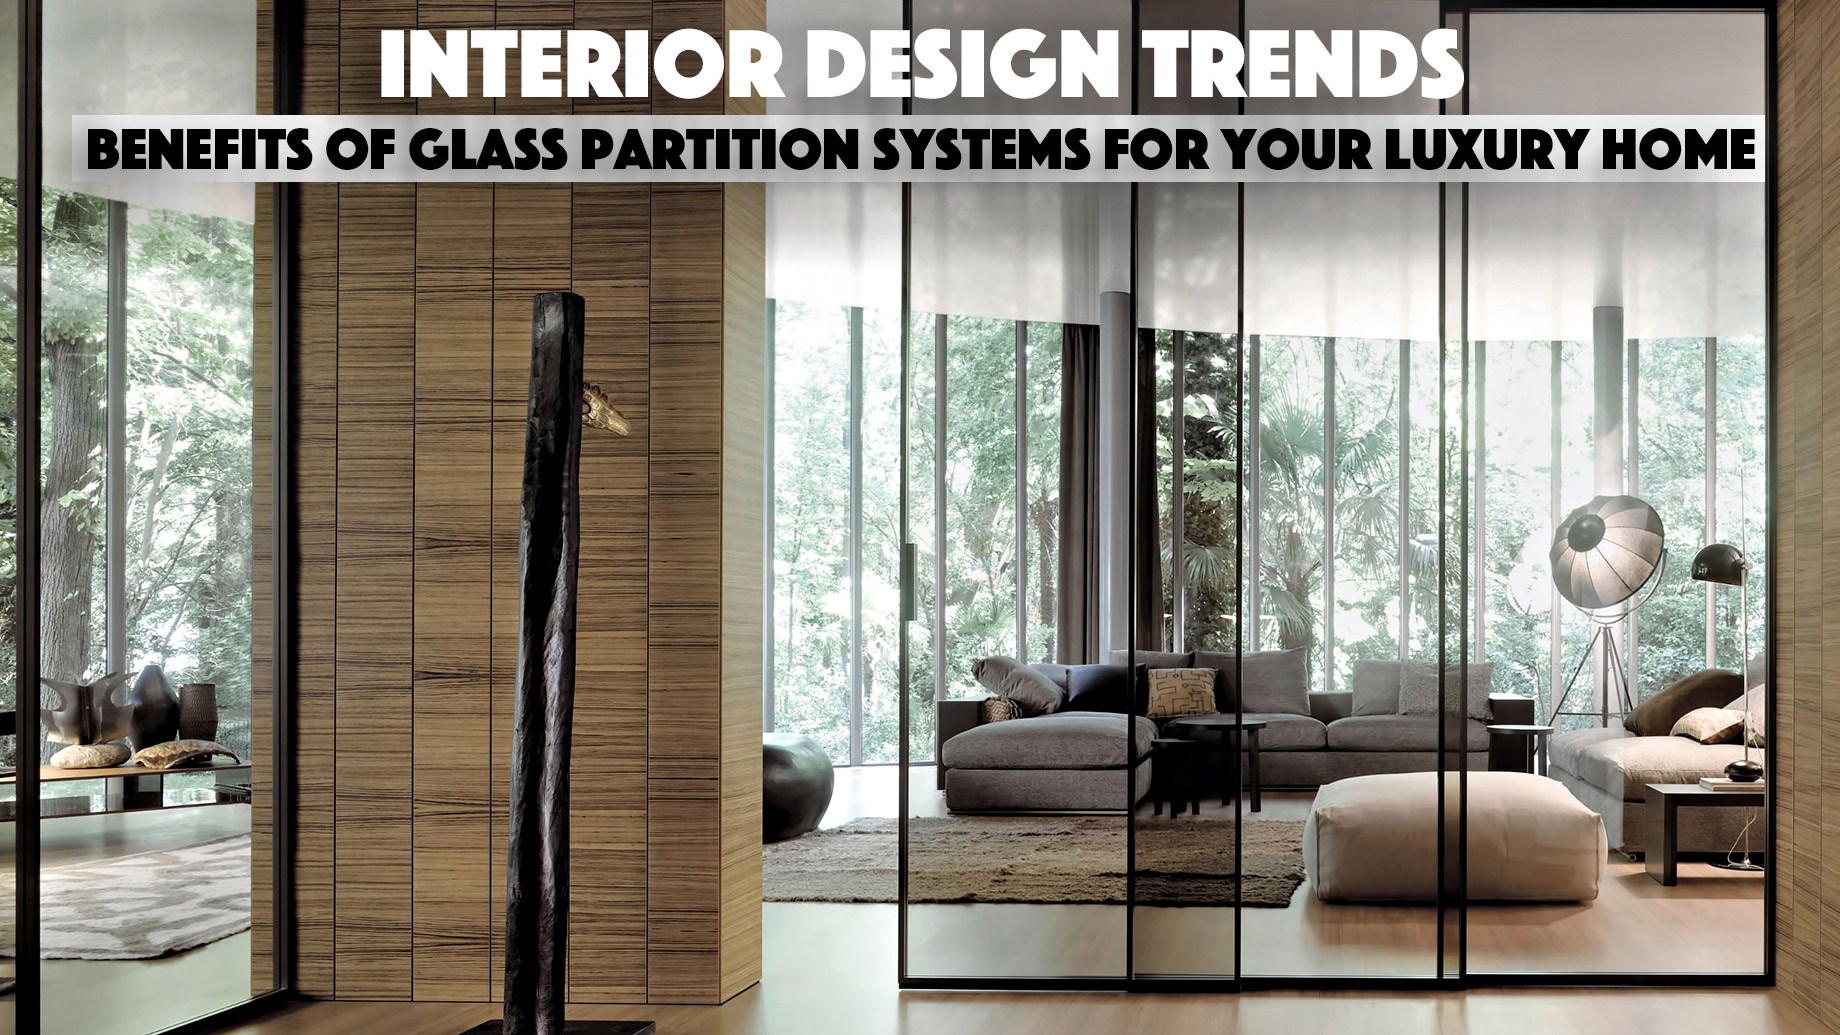 Interior Design Trends Benefits Of Glass Partition Systems For Your Luxury Home The Pinnacle List